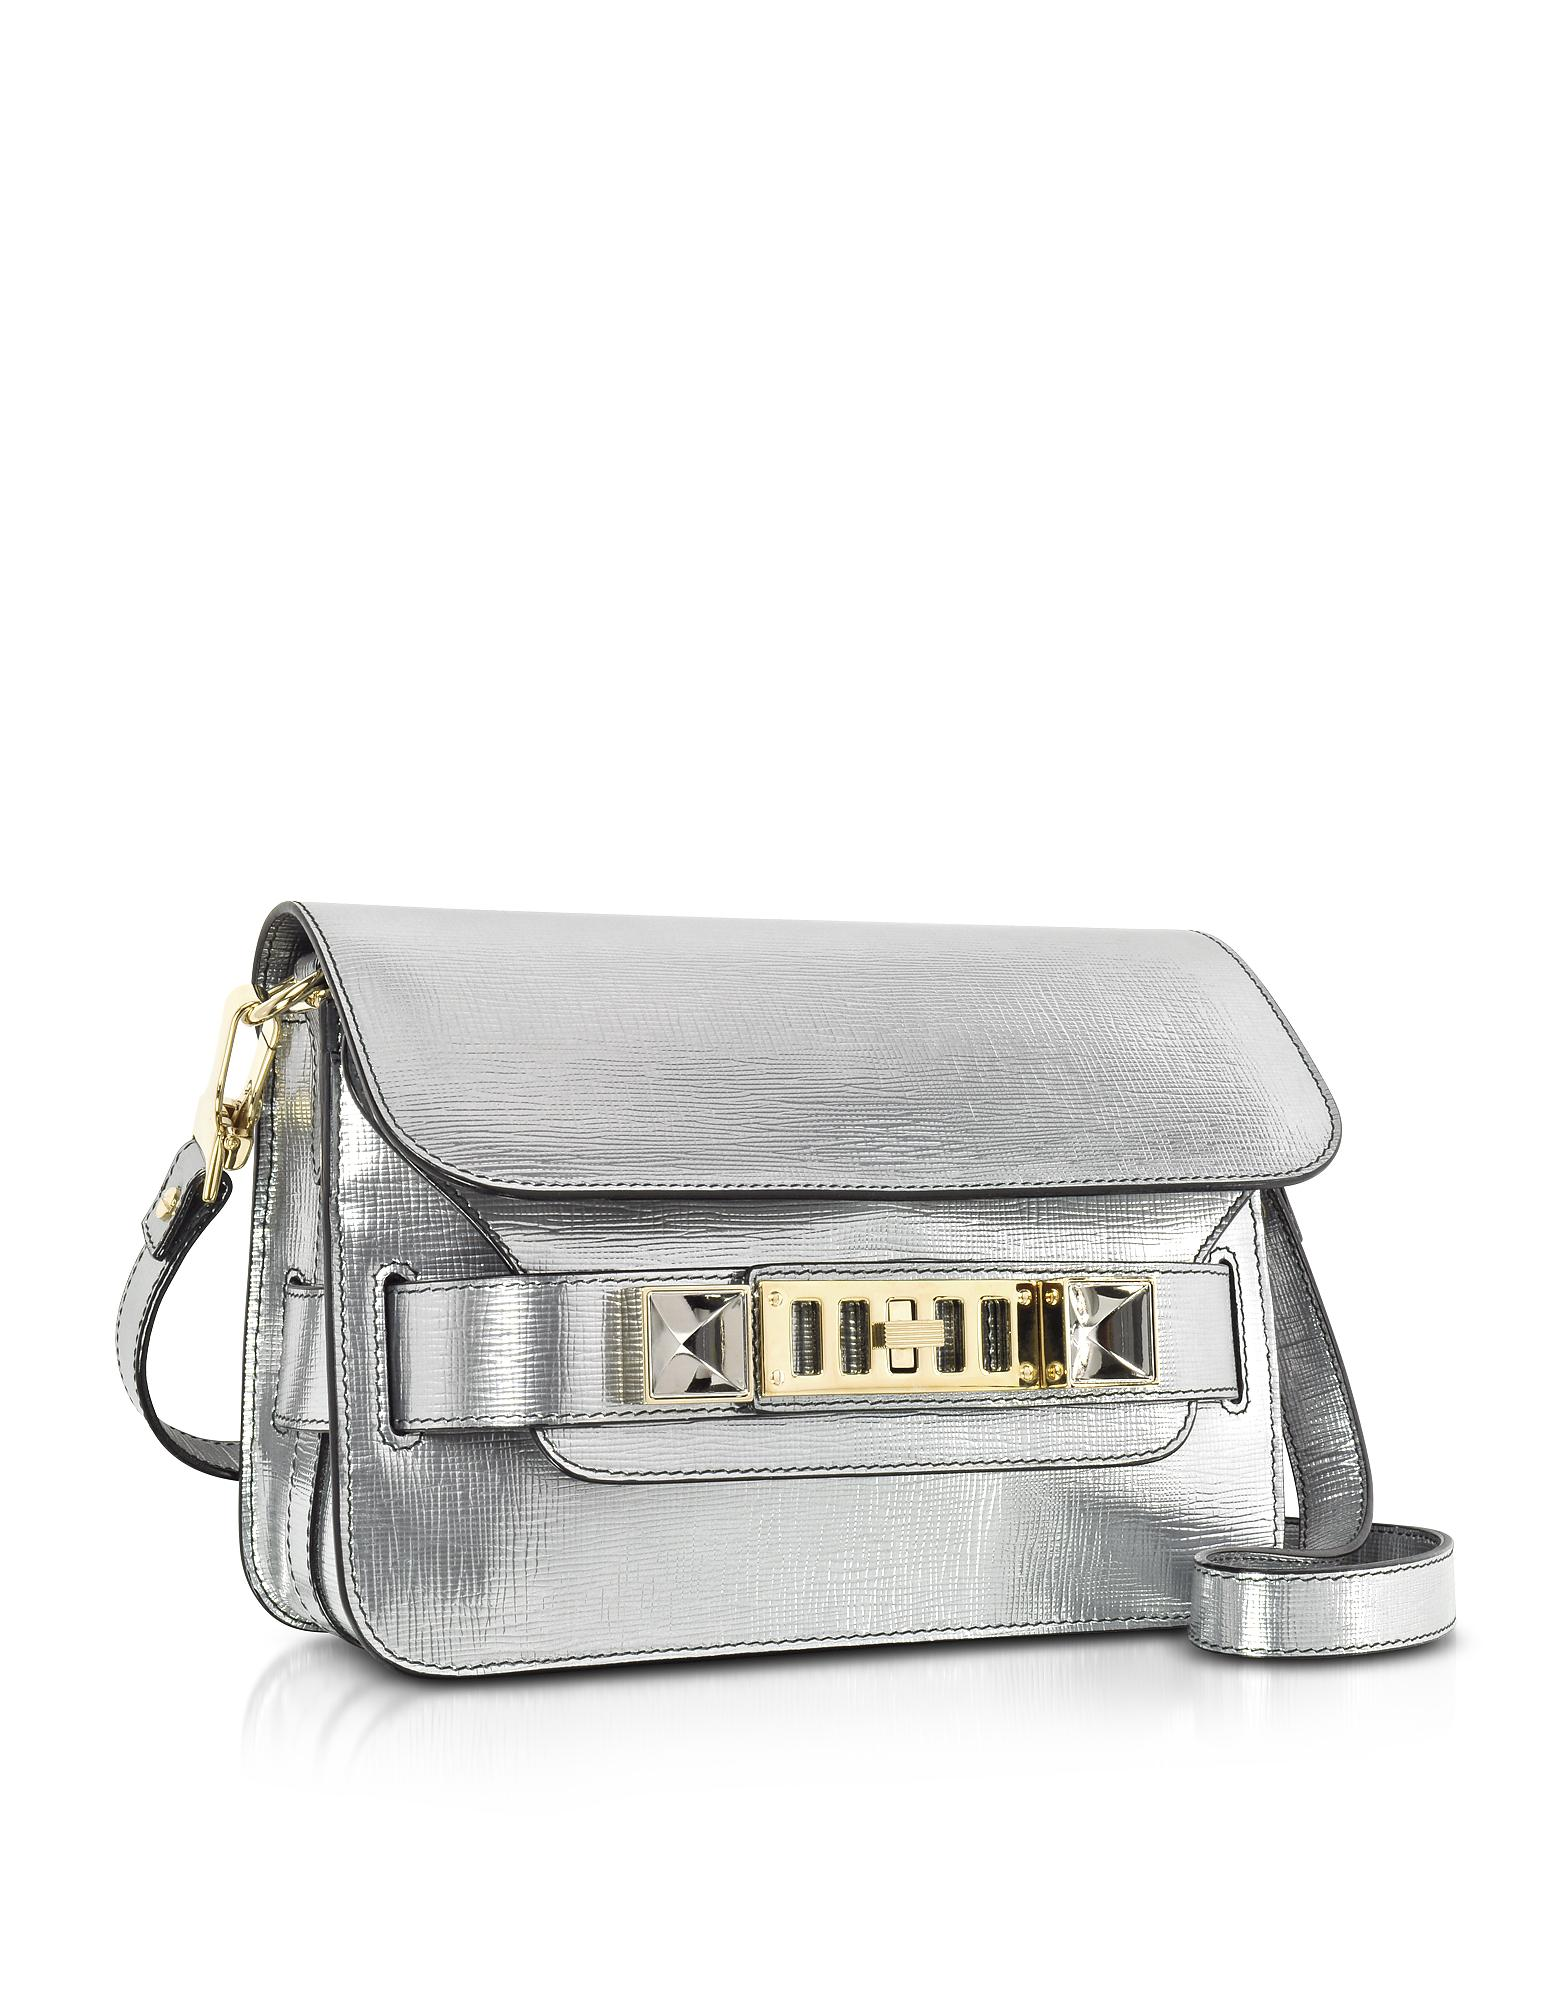 Ps11 Crossbody Bag in Silver Metallic Linosa Proenza Schouler 2HoYf3XLAs